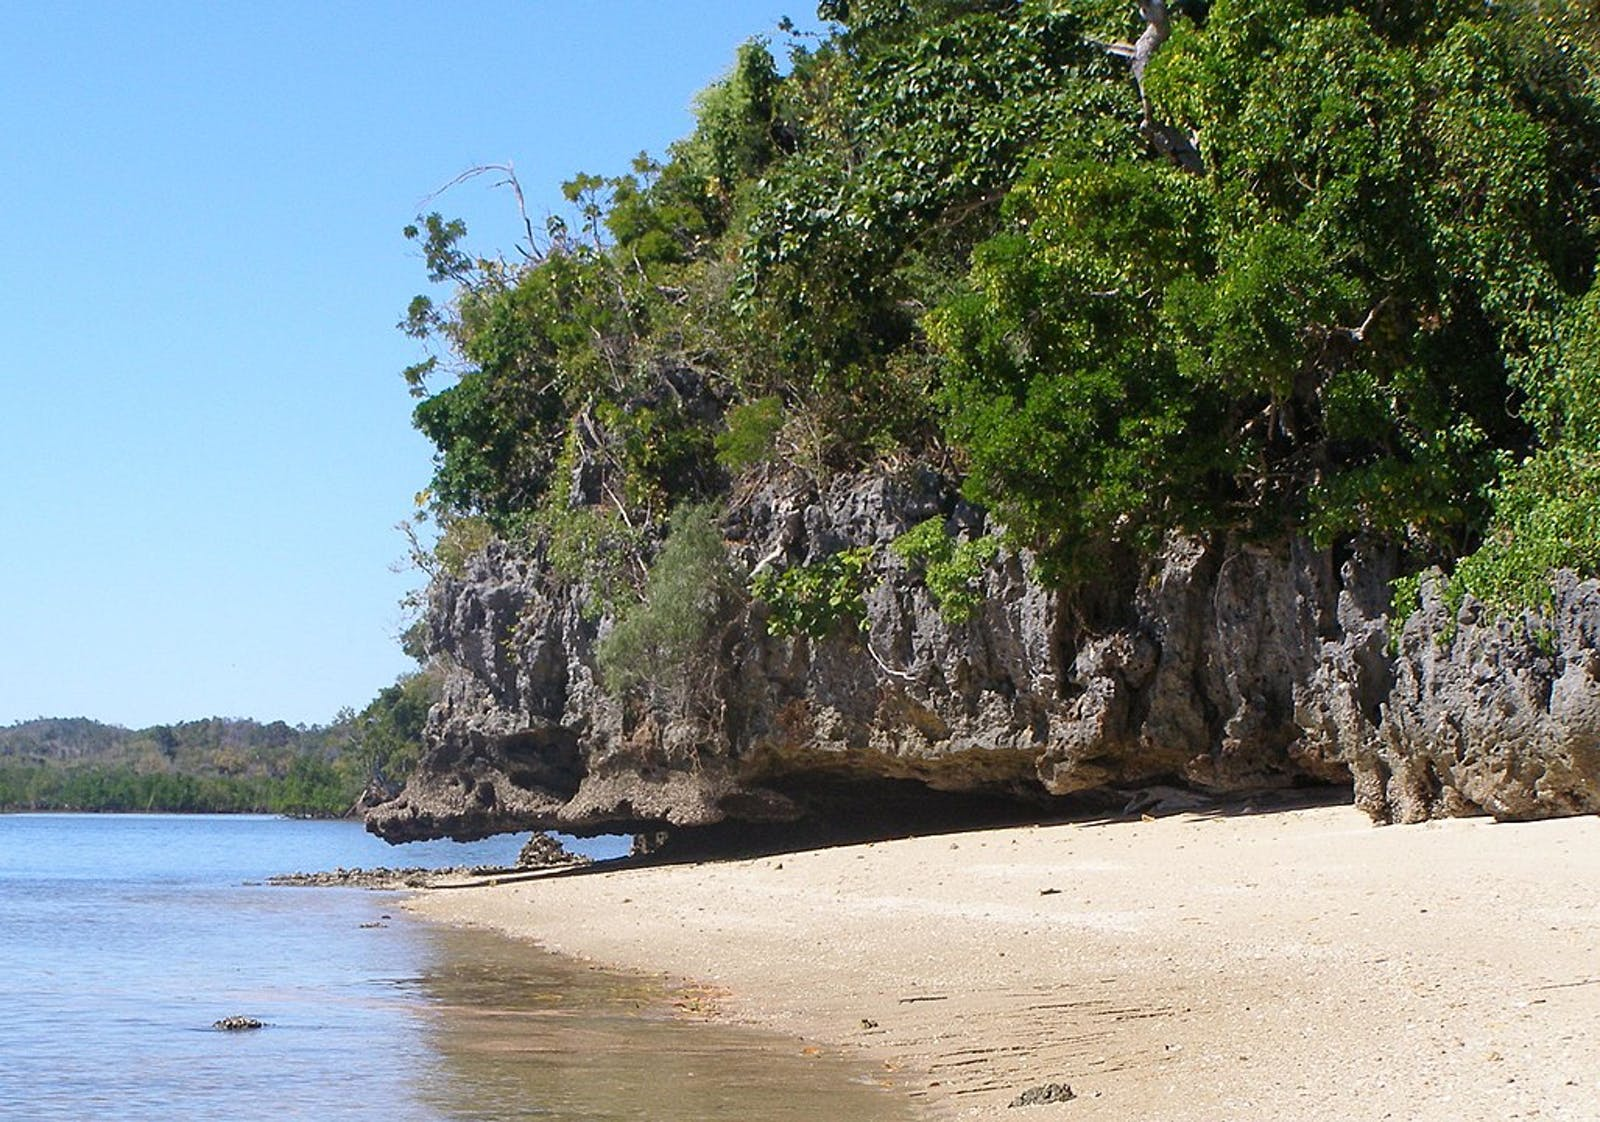 Madagascar Dry Deciduous Forests